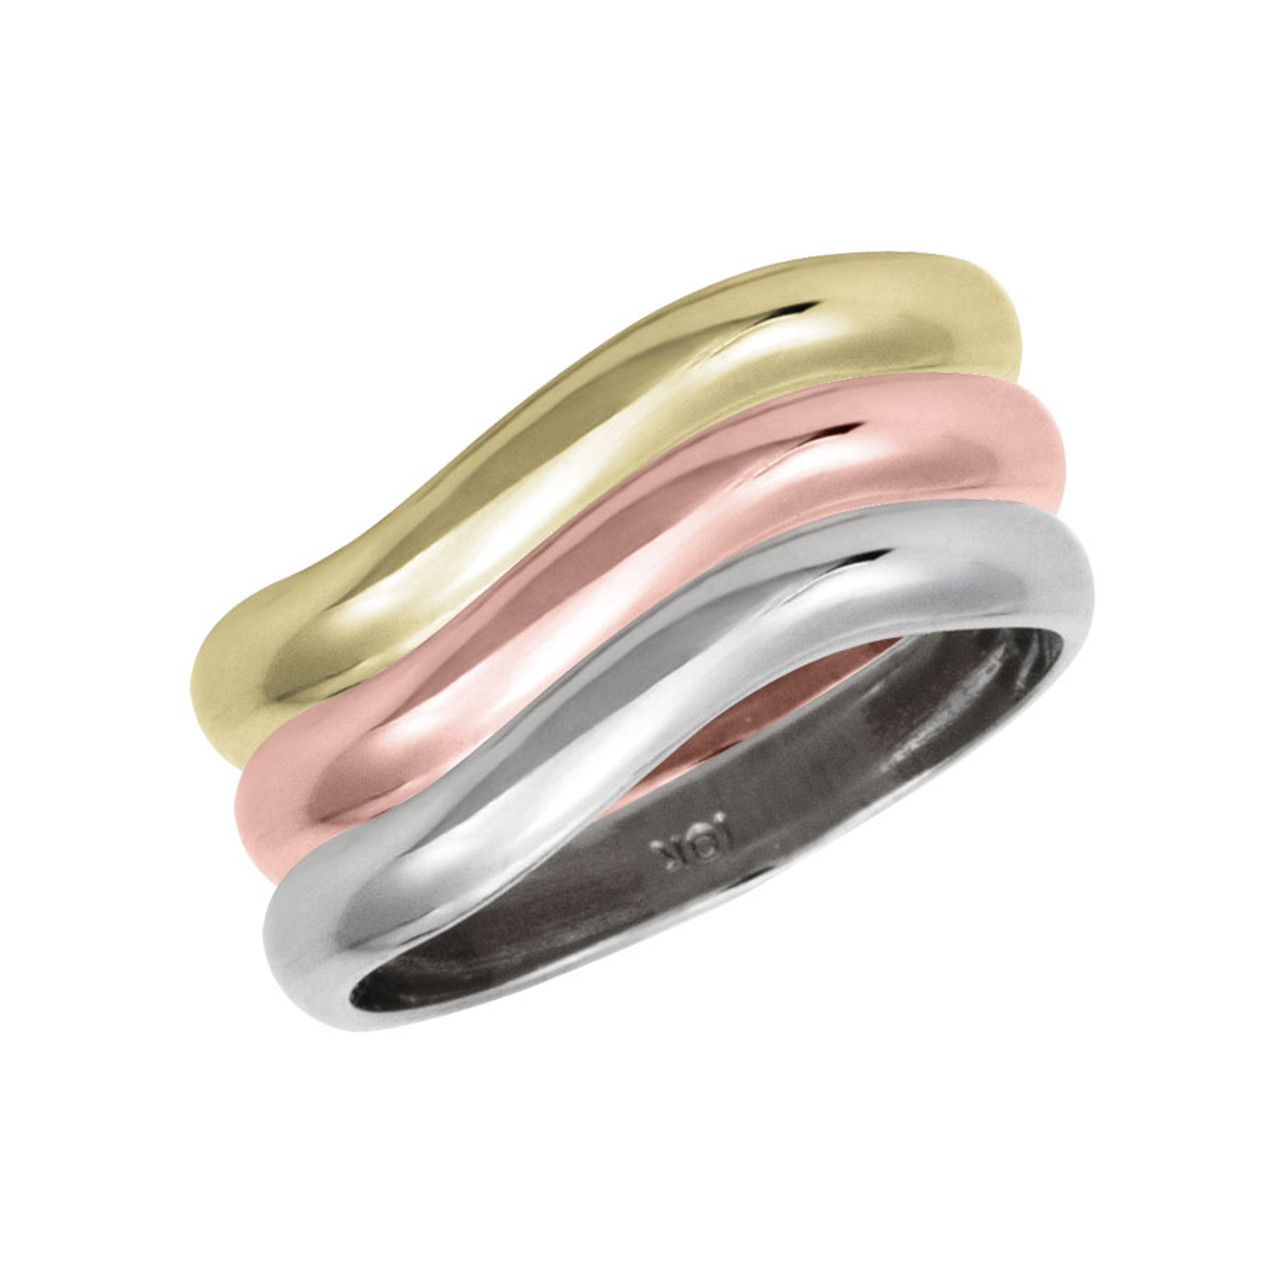 a2ba9a2cf0 Stackable Personalized 3 mm, 10k Gold Rings - a set of three rings -  Engraving